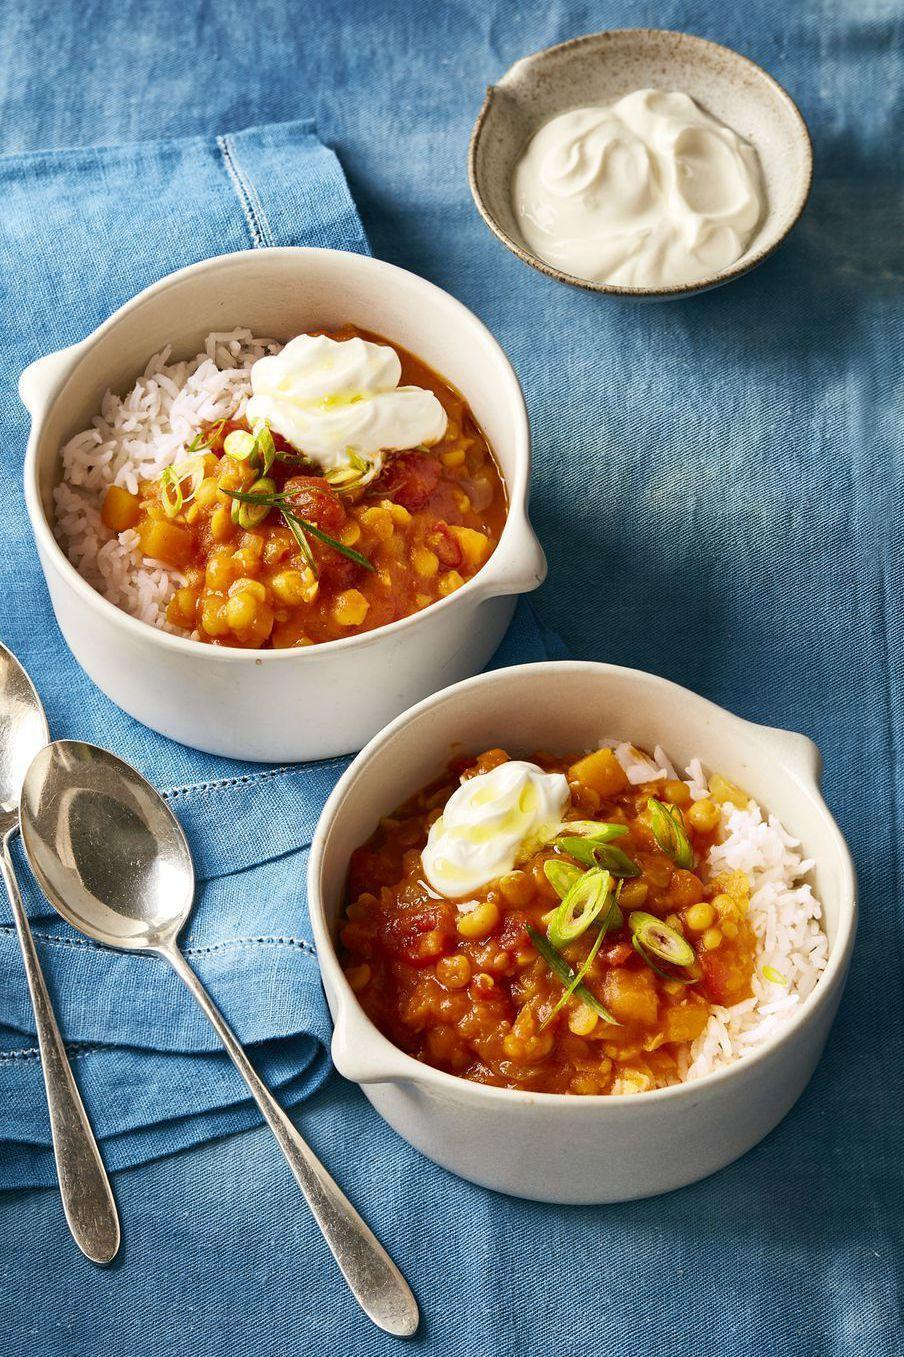 "<p>This hearty slow cooker dish is packed with hearty-healthy veggies like split peas, tomatoes, and <a href=""https://www.medicalnewstoday.com/articles/284479.php"" rel=""nofollow noopener"" target=""_blank"" data-ylk=""slk:butternut squash."" class=""link rapid-noclick-resp"">butternut squash.</a></p><p><a href=""https://www.womansday.com/food-recipes/food-drinks/recipes/a60510/curried-butternut-squash-stew-recipe/"" rel=""nofollow noopener"" target=""_blank"" data-ylk=""slk:Get the Slow Cooker Curried Butternut Squash Stew recipe."" class=""link rapid-noclick-resp""><em><strong>Get the Slow Cooker Curried Butternut Squash Stew recipe.</strong></em></a></p><p><strong><a class=""link rapid-noclick-resp"" href=""https://www.amazon.com/Crock-Pot-SCCPVL610-R-A-6-Qt-Red/dp/B0196BJHXY/?tag=syn-yahoo-20&ascsubtag=%5Bartid%7C10070.g.2176%5Bsrc%7Cyahoo-us"" rel=""nofollow noopener"" target=""_blank"" data-ylk=""slk:SHOP CROCKPOTS"">SHOP CROCKPOTS</a></strong></p>"